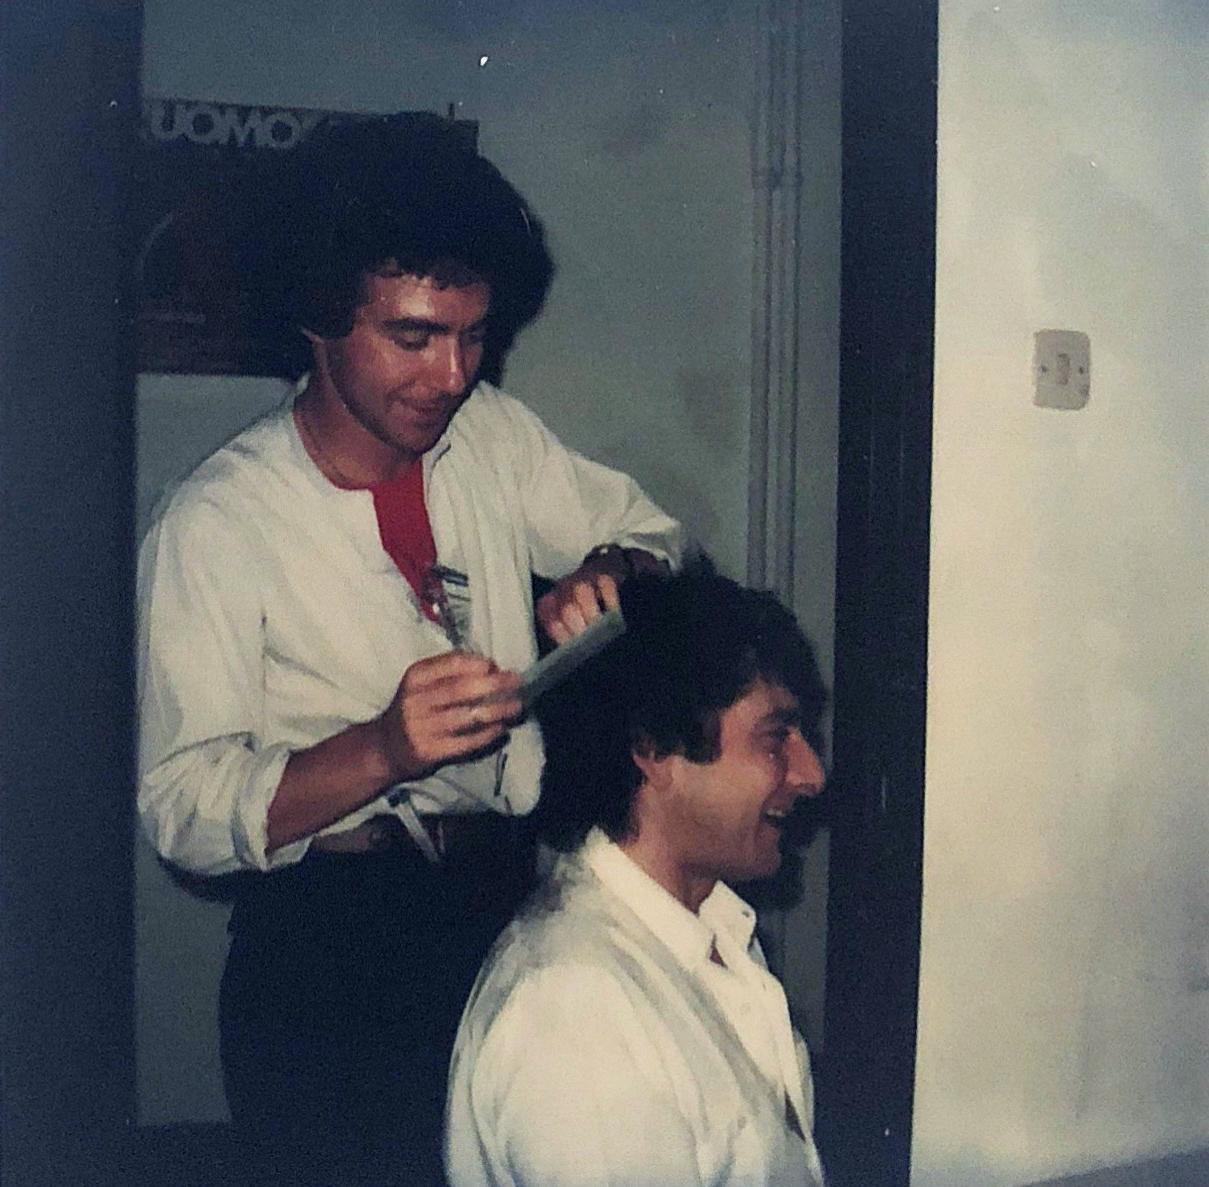 Michael cutting Aldo Coppola's hair